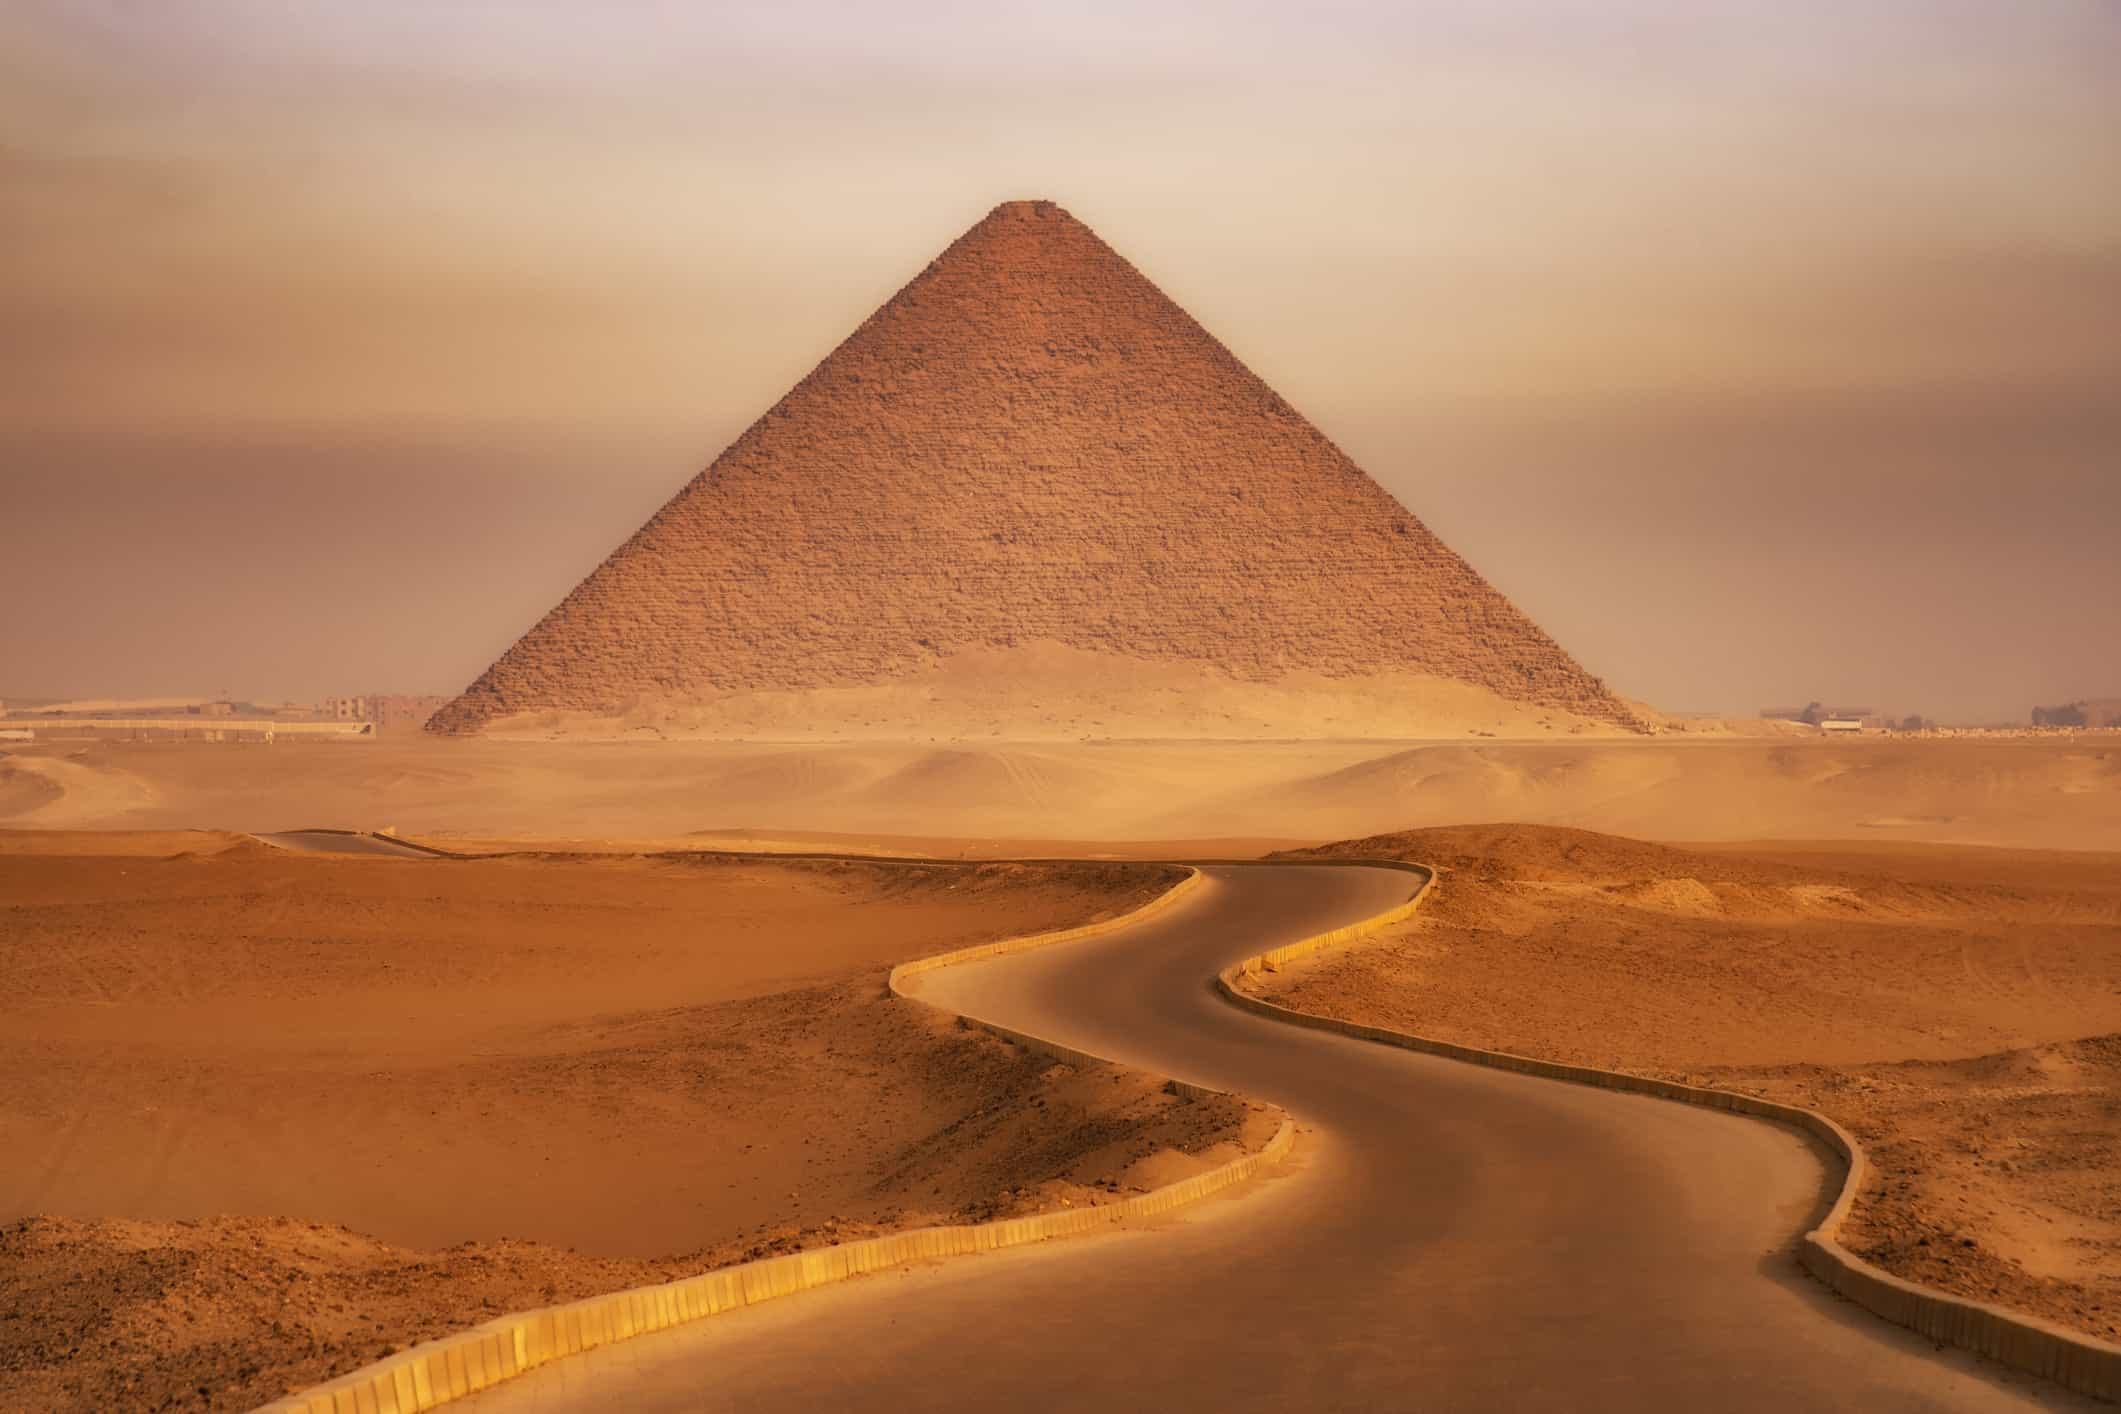 view of an Egyptian pyramid